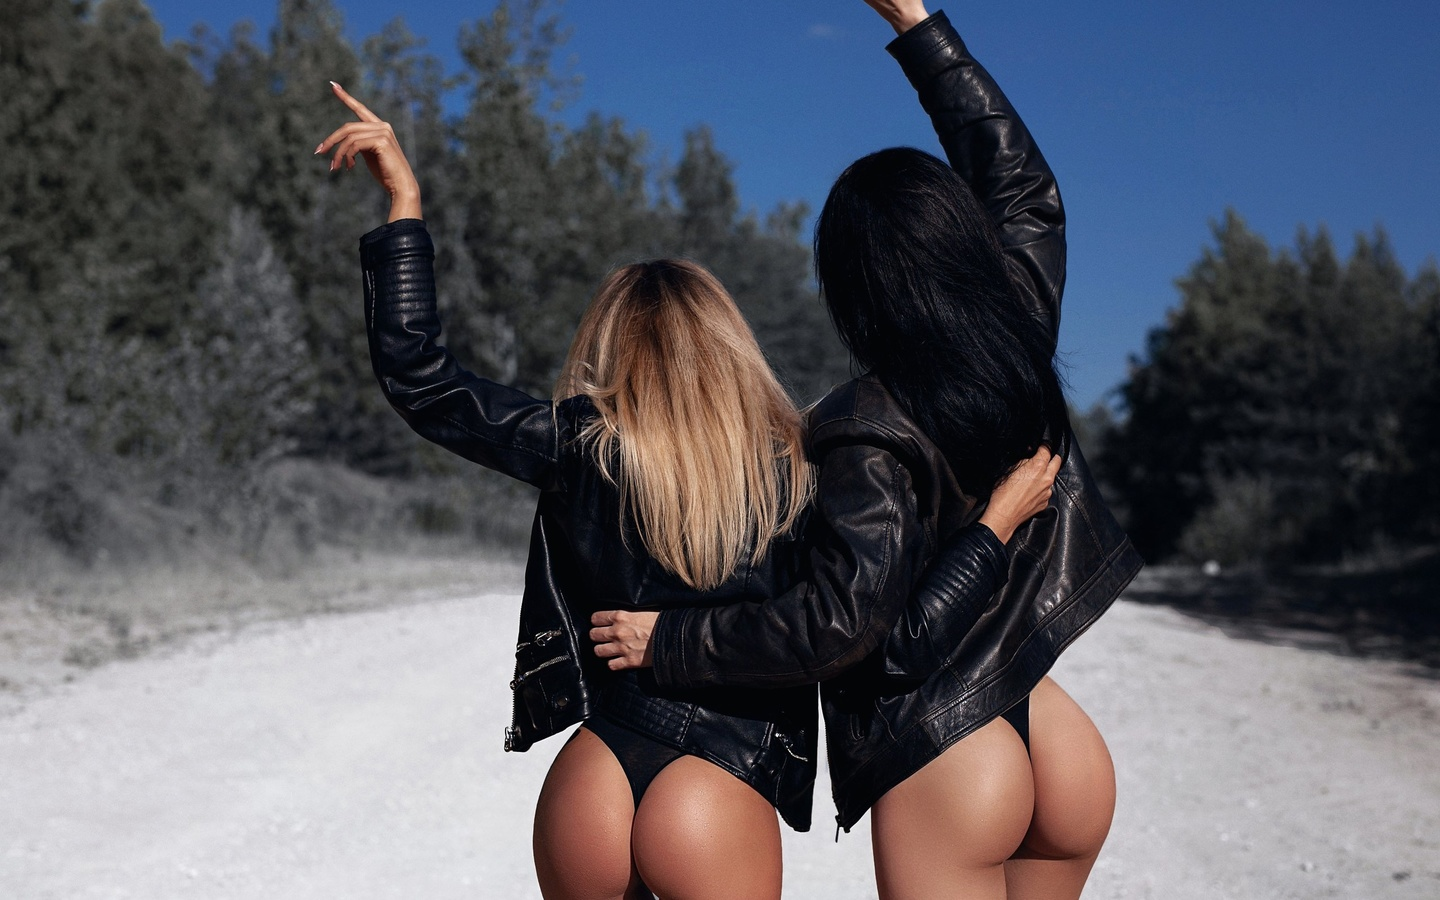 women, leather jackets, ass, road, back, blonde, the gap, black panties, women outdoors, black hair, two women